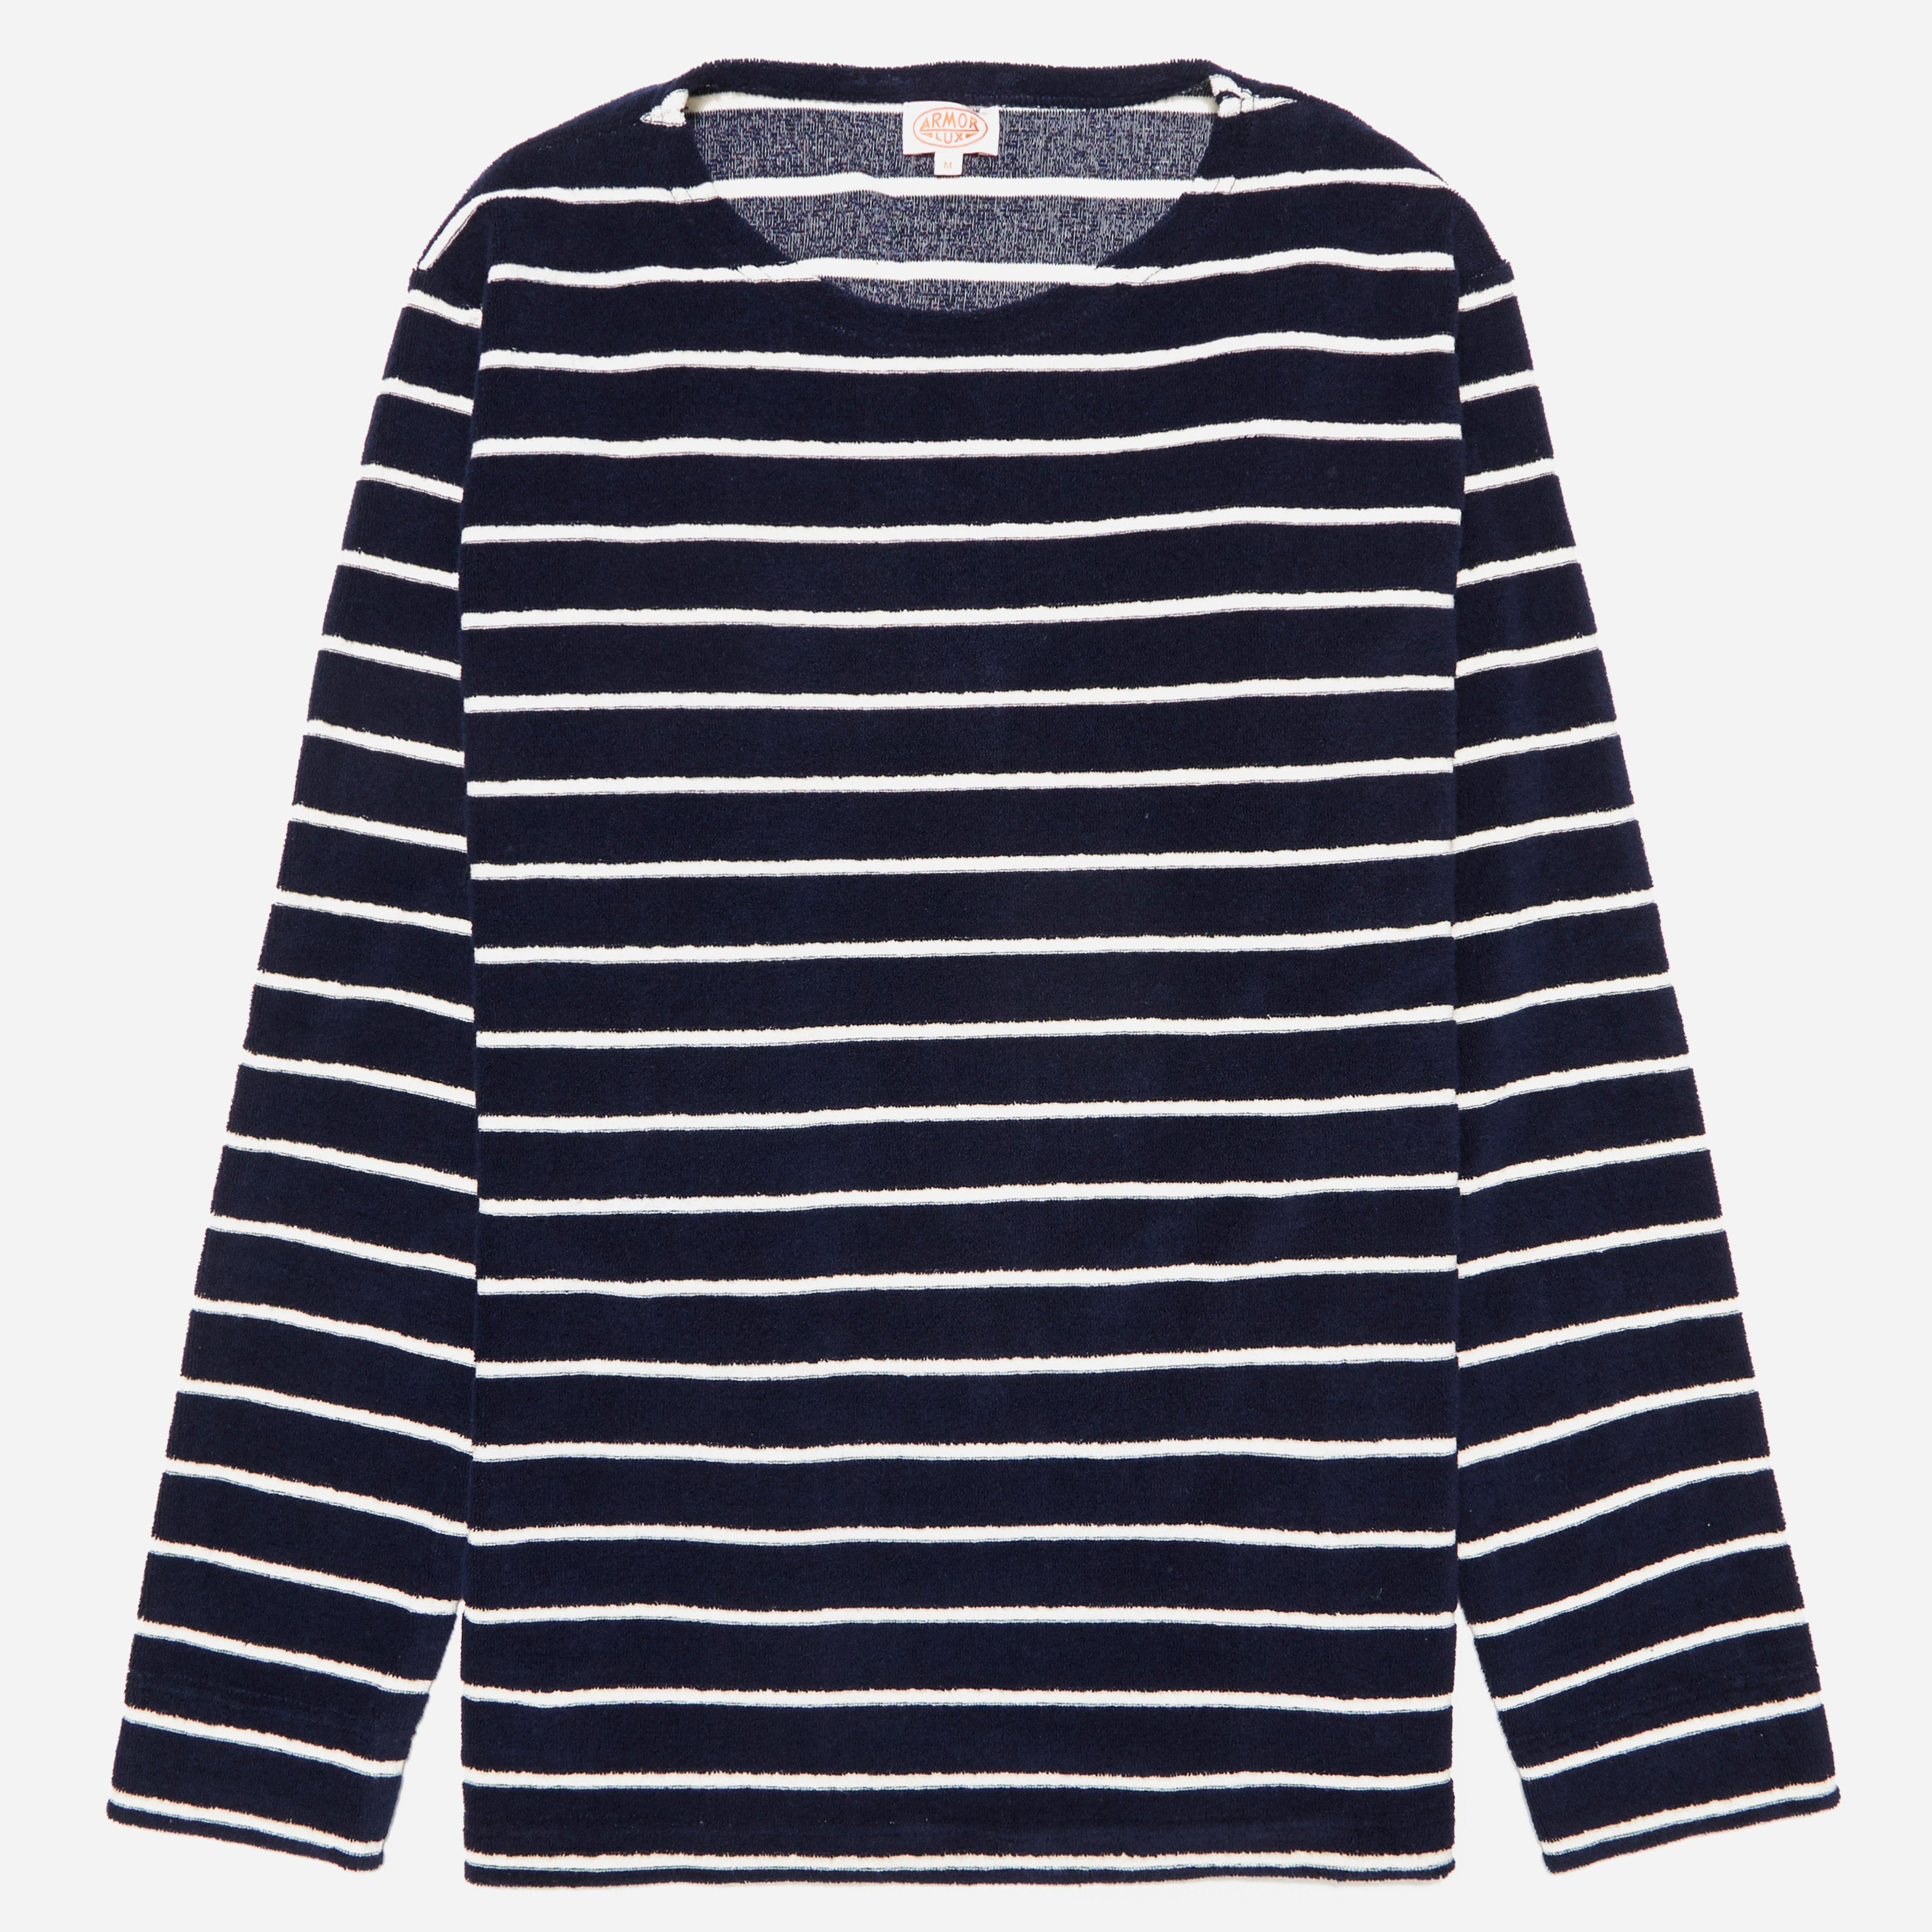 Armor Lux 75175 Sailor Sweatshirt